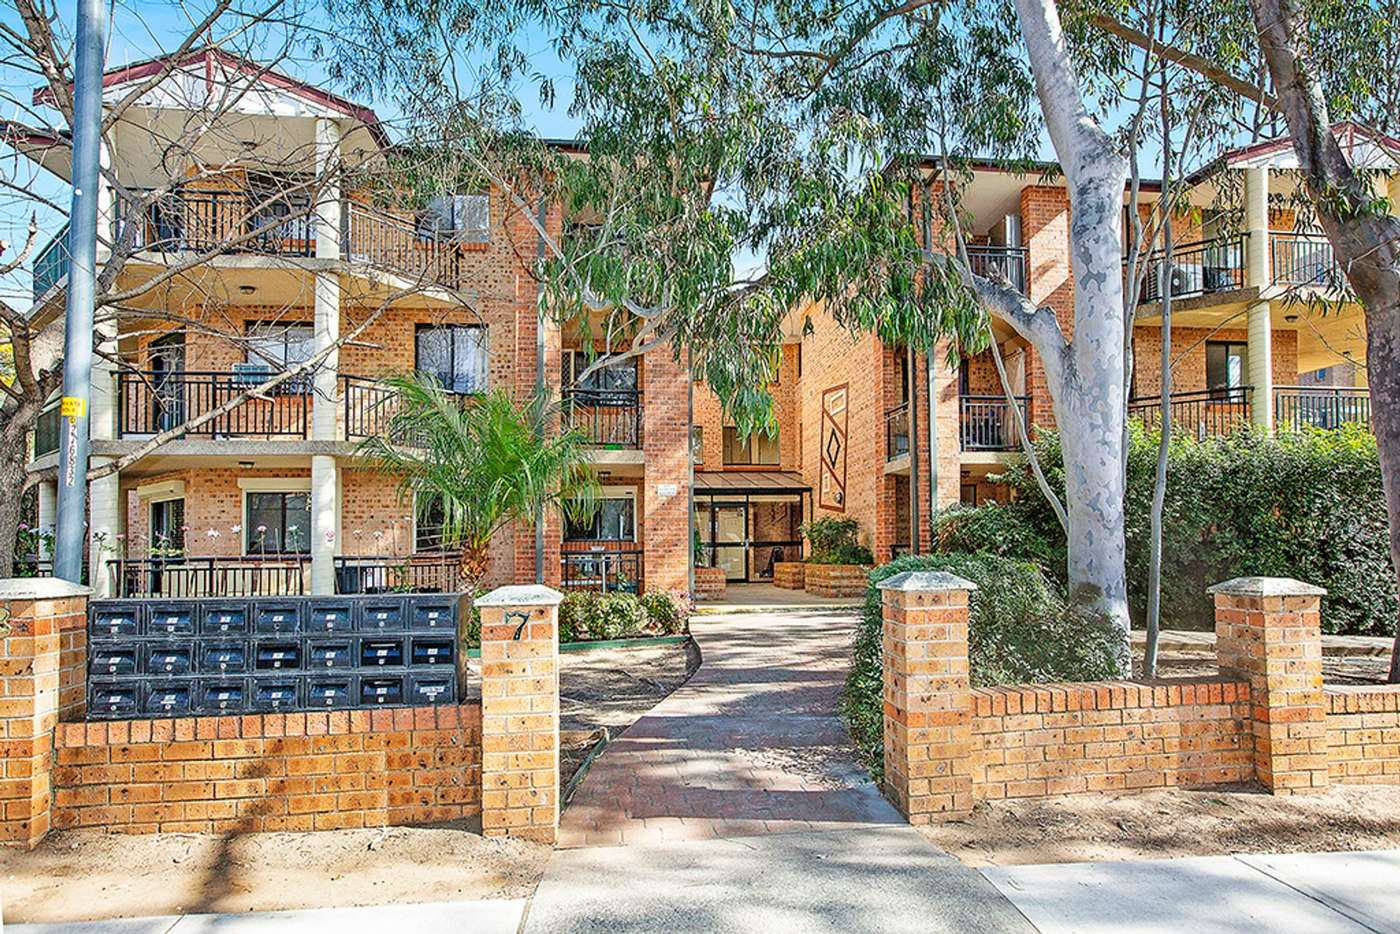 Main view of Homely unit listing, 5/3-7 Addlestone Road, Merrylands NSW 2160